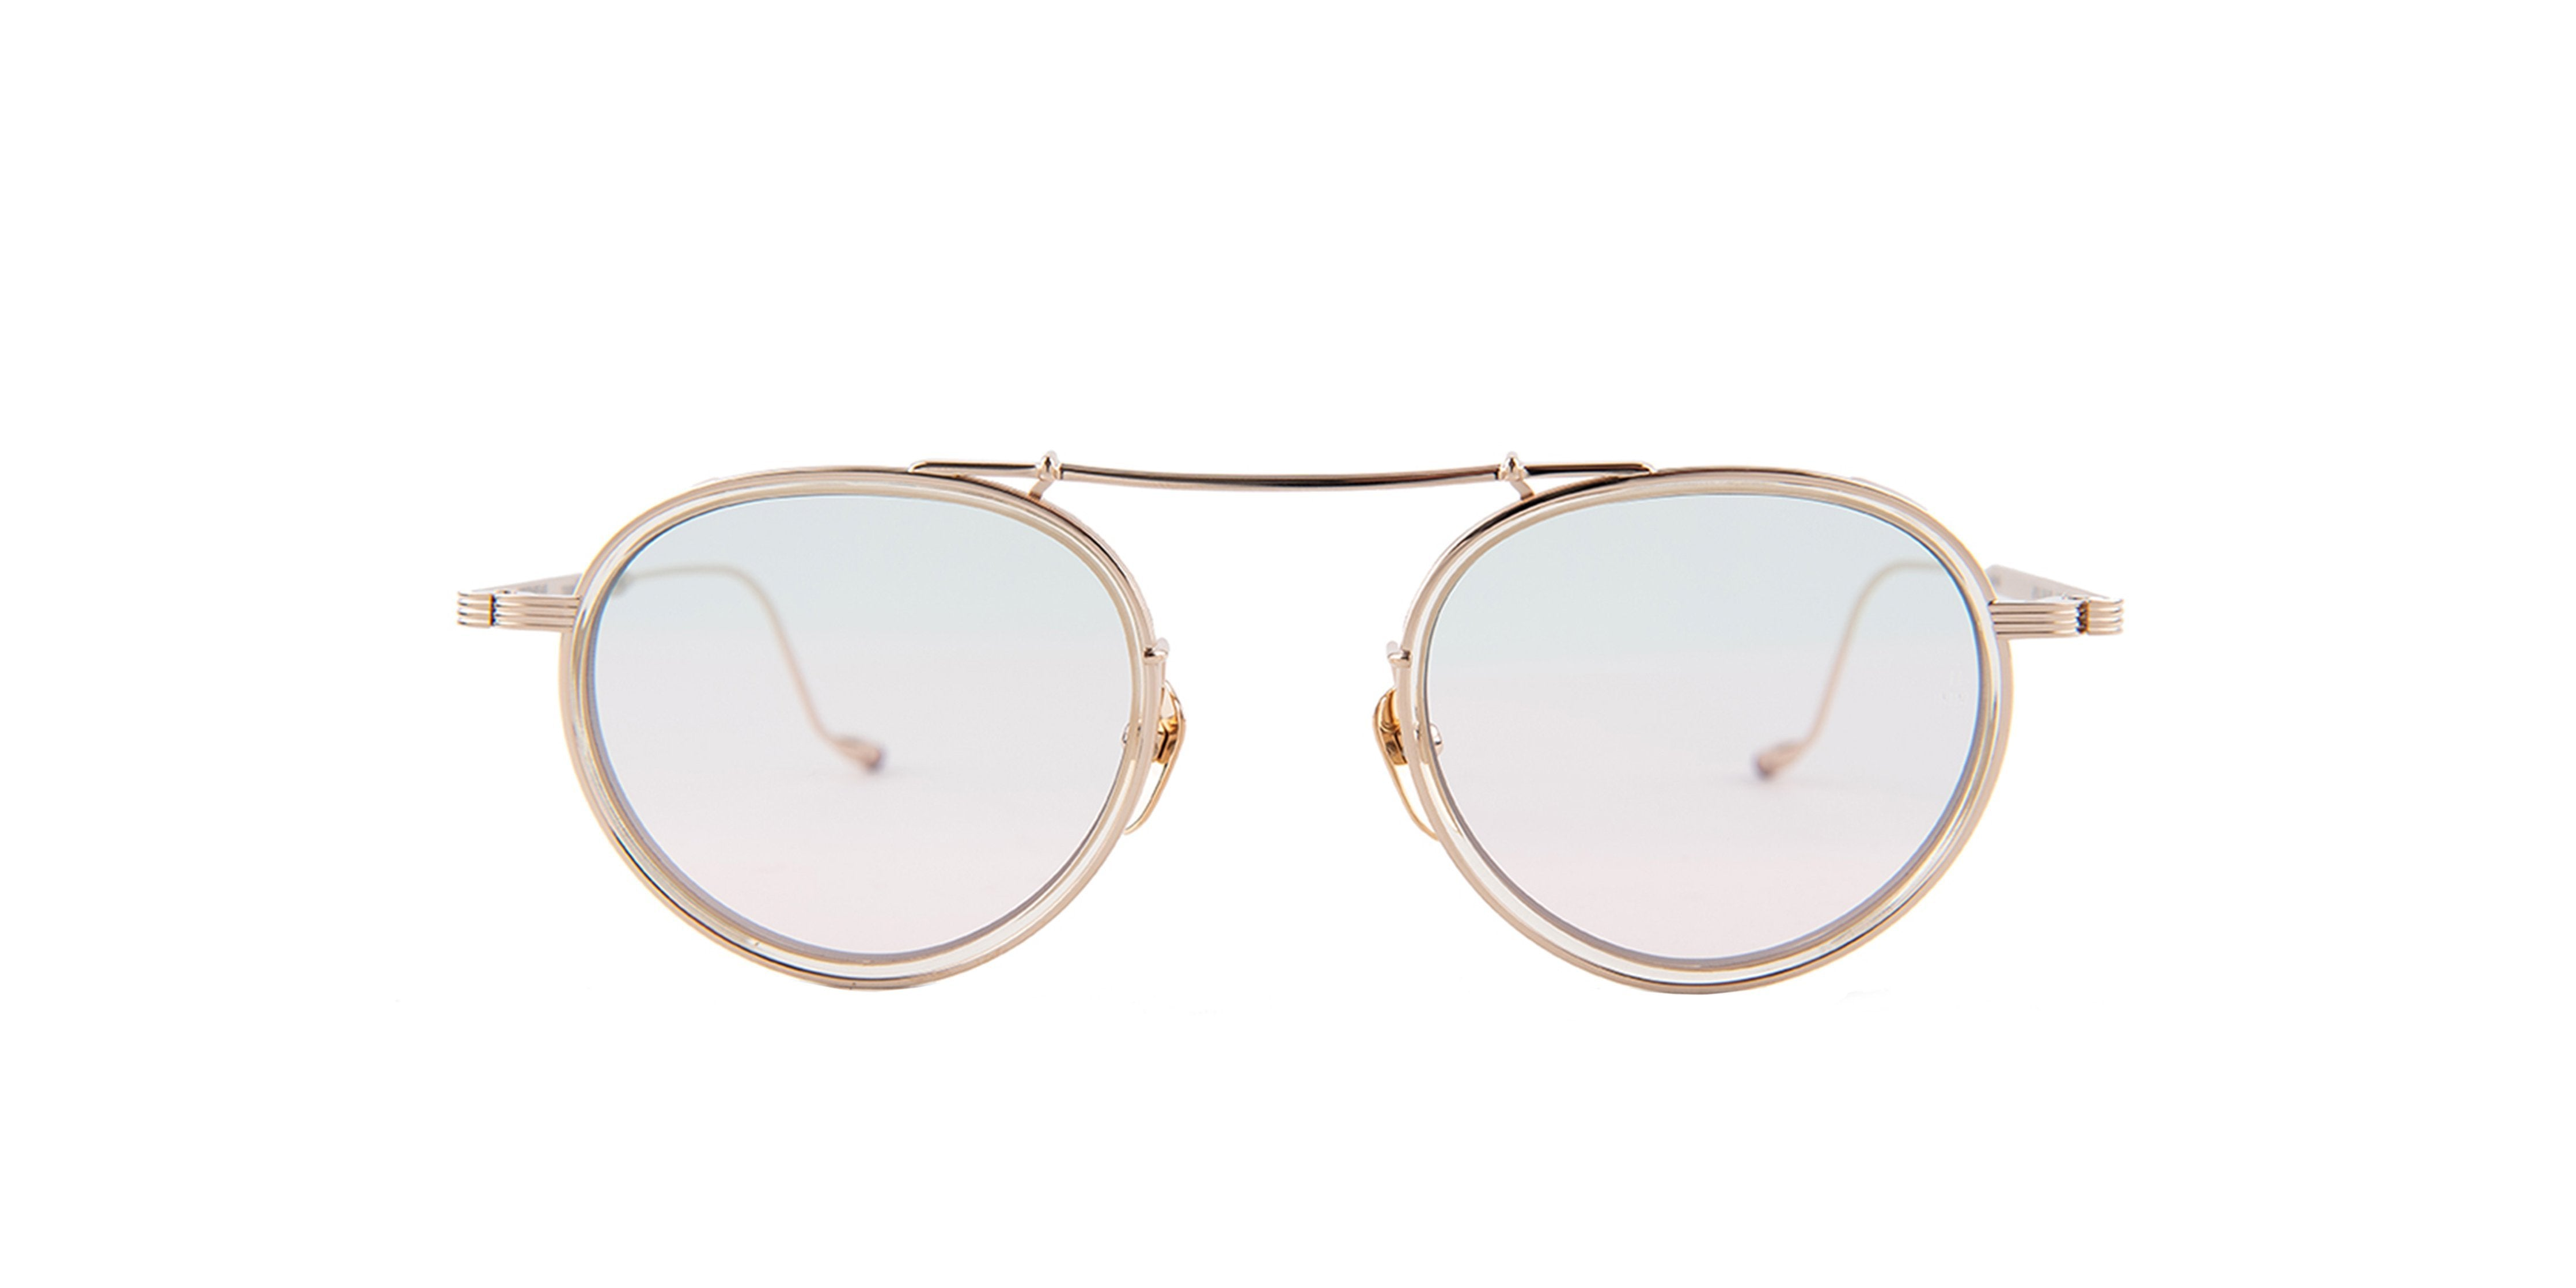 Jacques Marie Mage - Apollinaire Gold/Clear Round Unisex Sunglasses - 48mm-Sunglasses-Designer Eyes